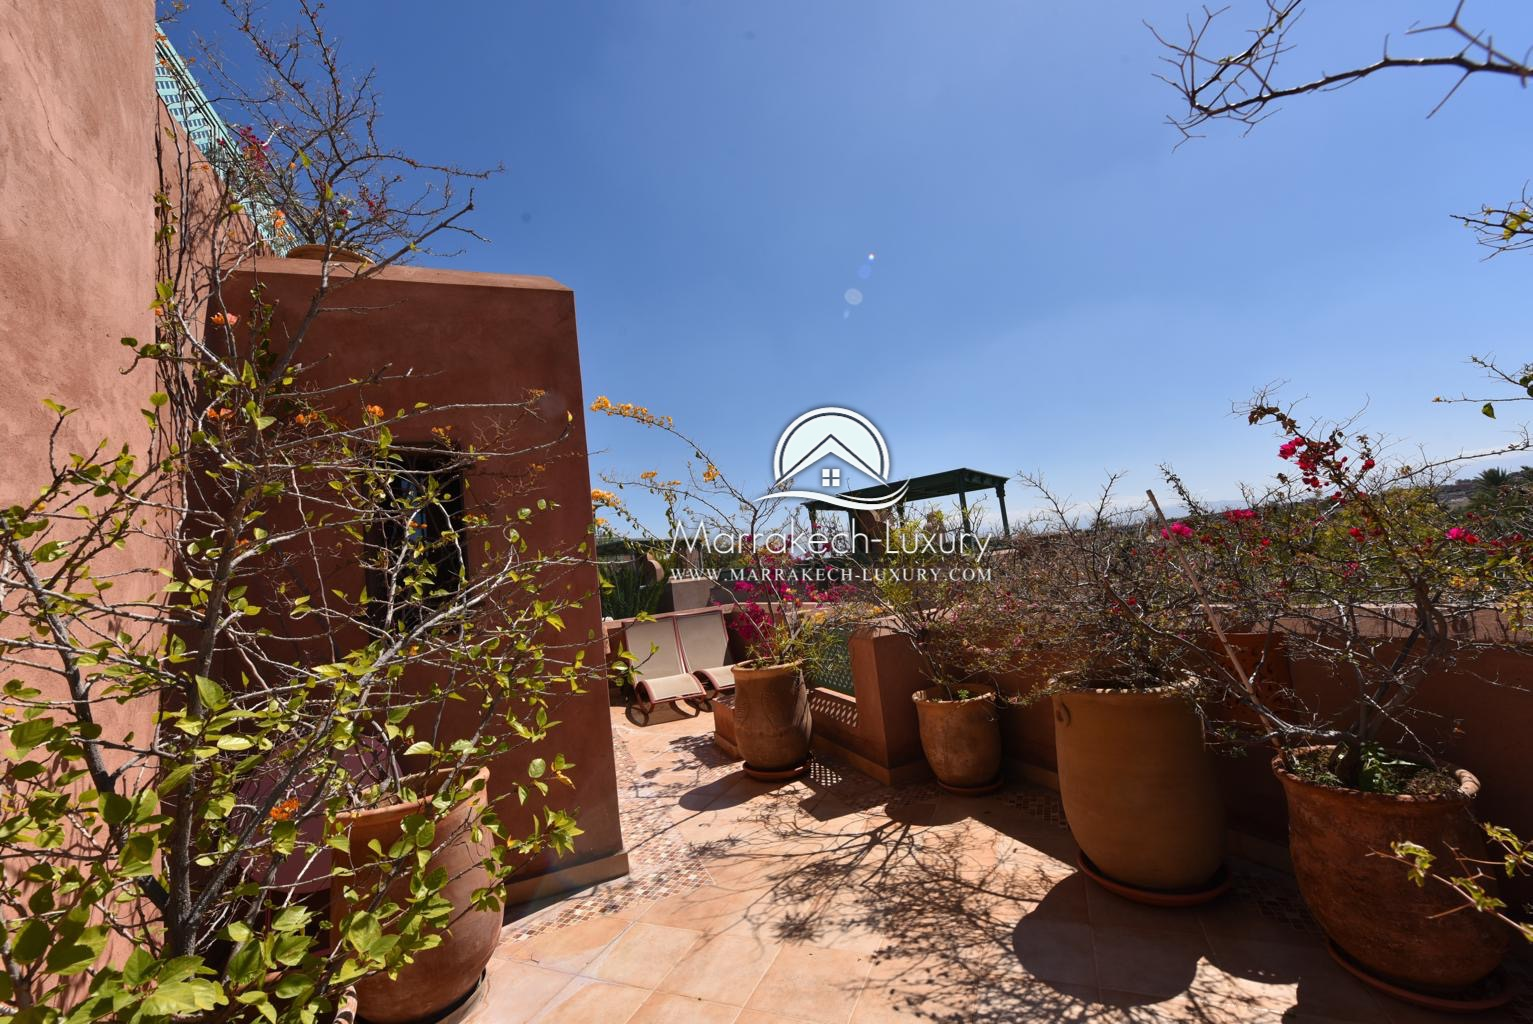 Aptavagd1019 37 agence immobili re marrakech acheter for Agence immobiliere 37